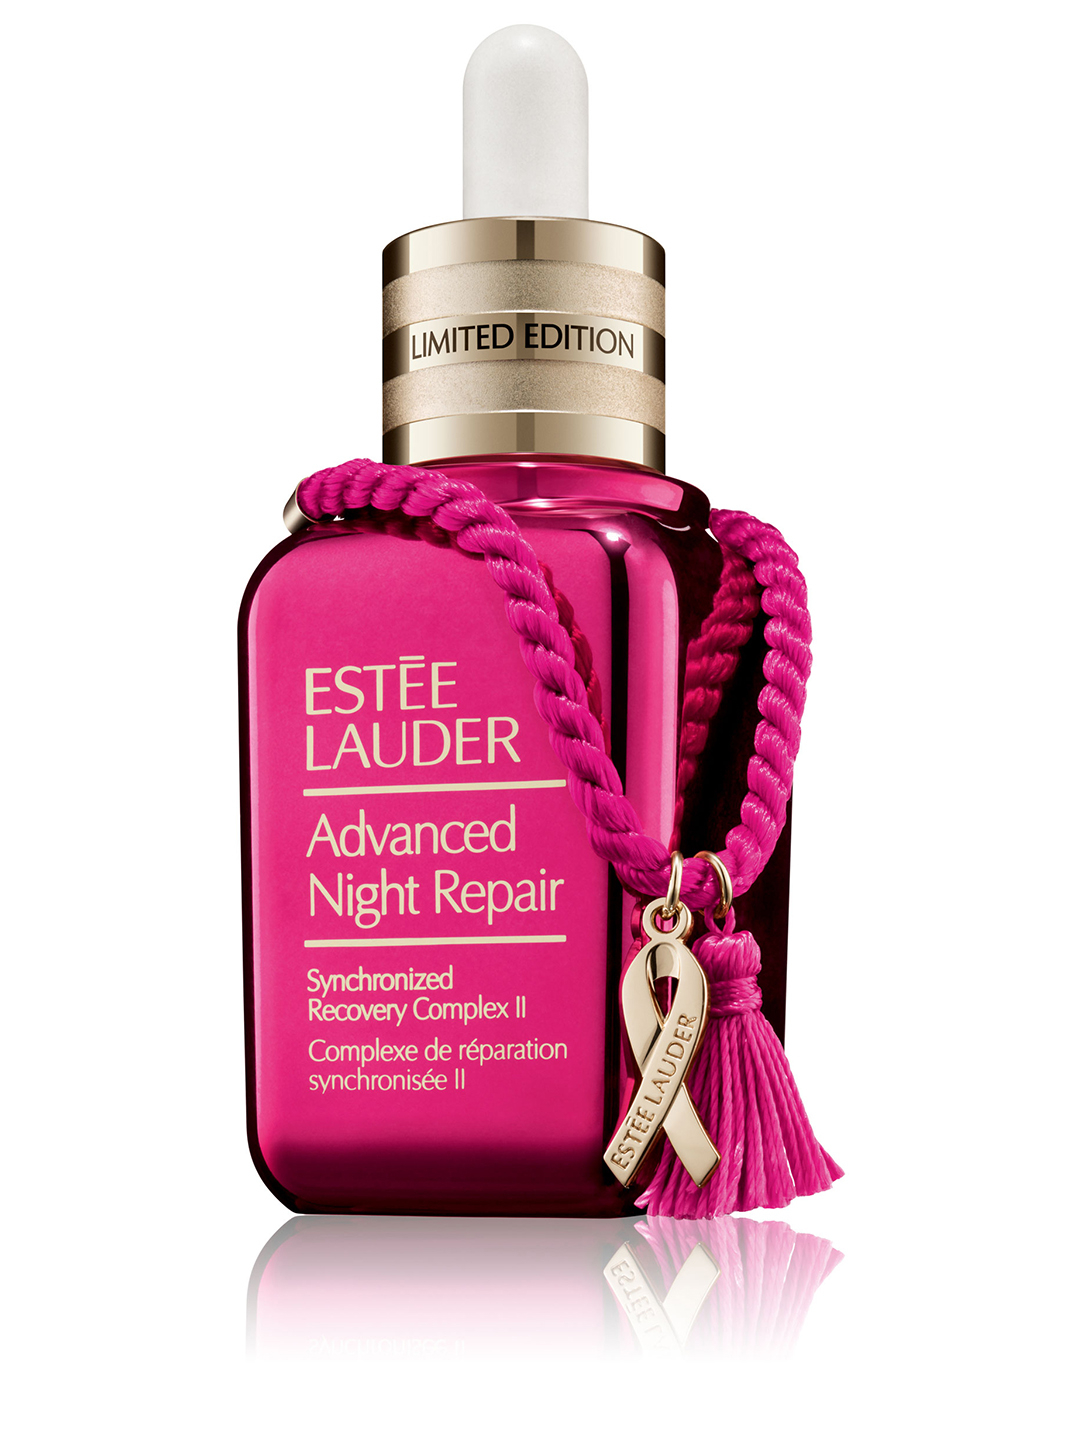 ESTÉE LAUDER Sérum Advanced Night Repair avec bracelet ruban rose, édition hors série à collectionner Beauté